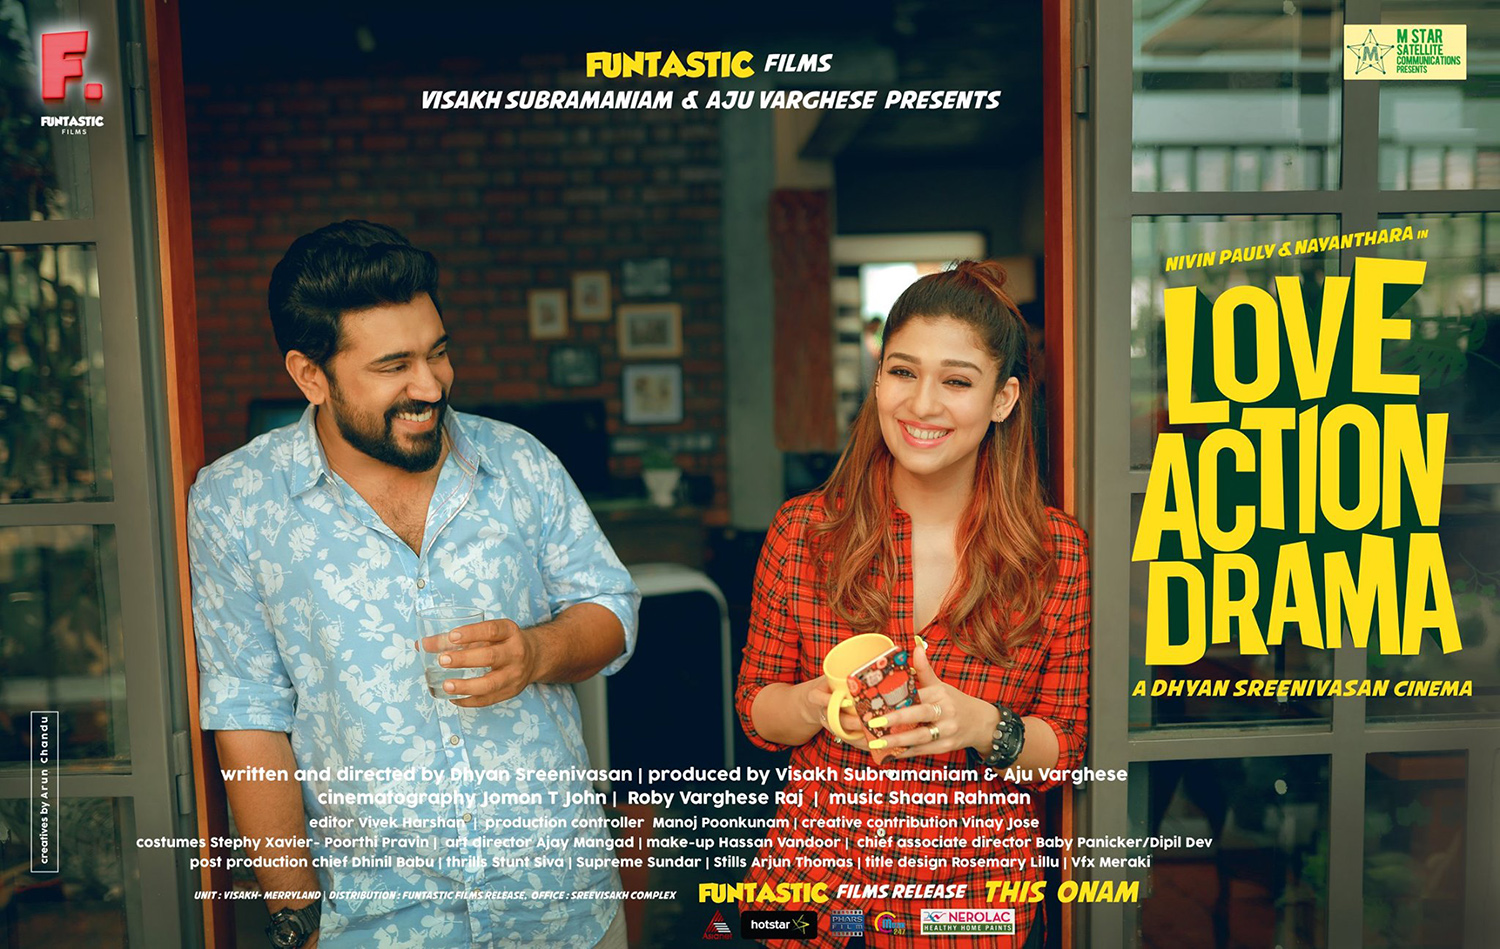 love action drama,love action drama first look poster,love action drama first look,lad,lad first look poster,nivin pauly,nayanthara,dhyan sreenivasan,nivin pauly nayanthara movie poster,nayanthara new malayalam film,nivin pauly and nayanthara in love action drama,nayanthara new malayalam movie stills,aju varghese